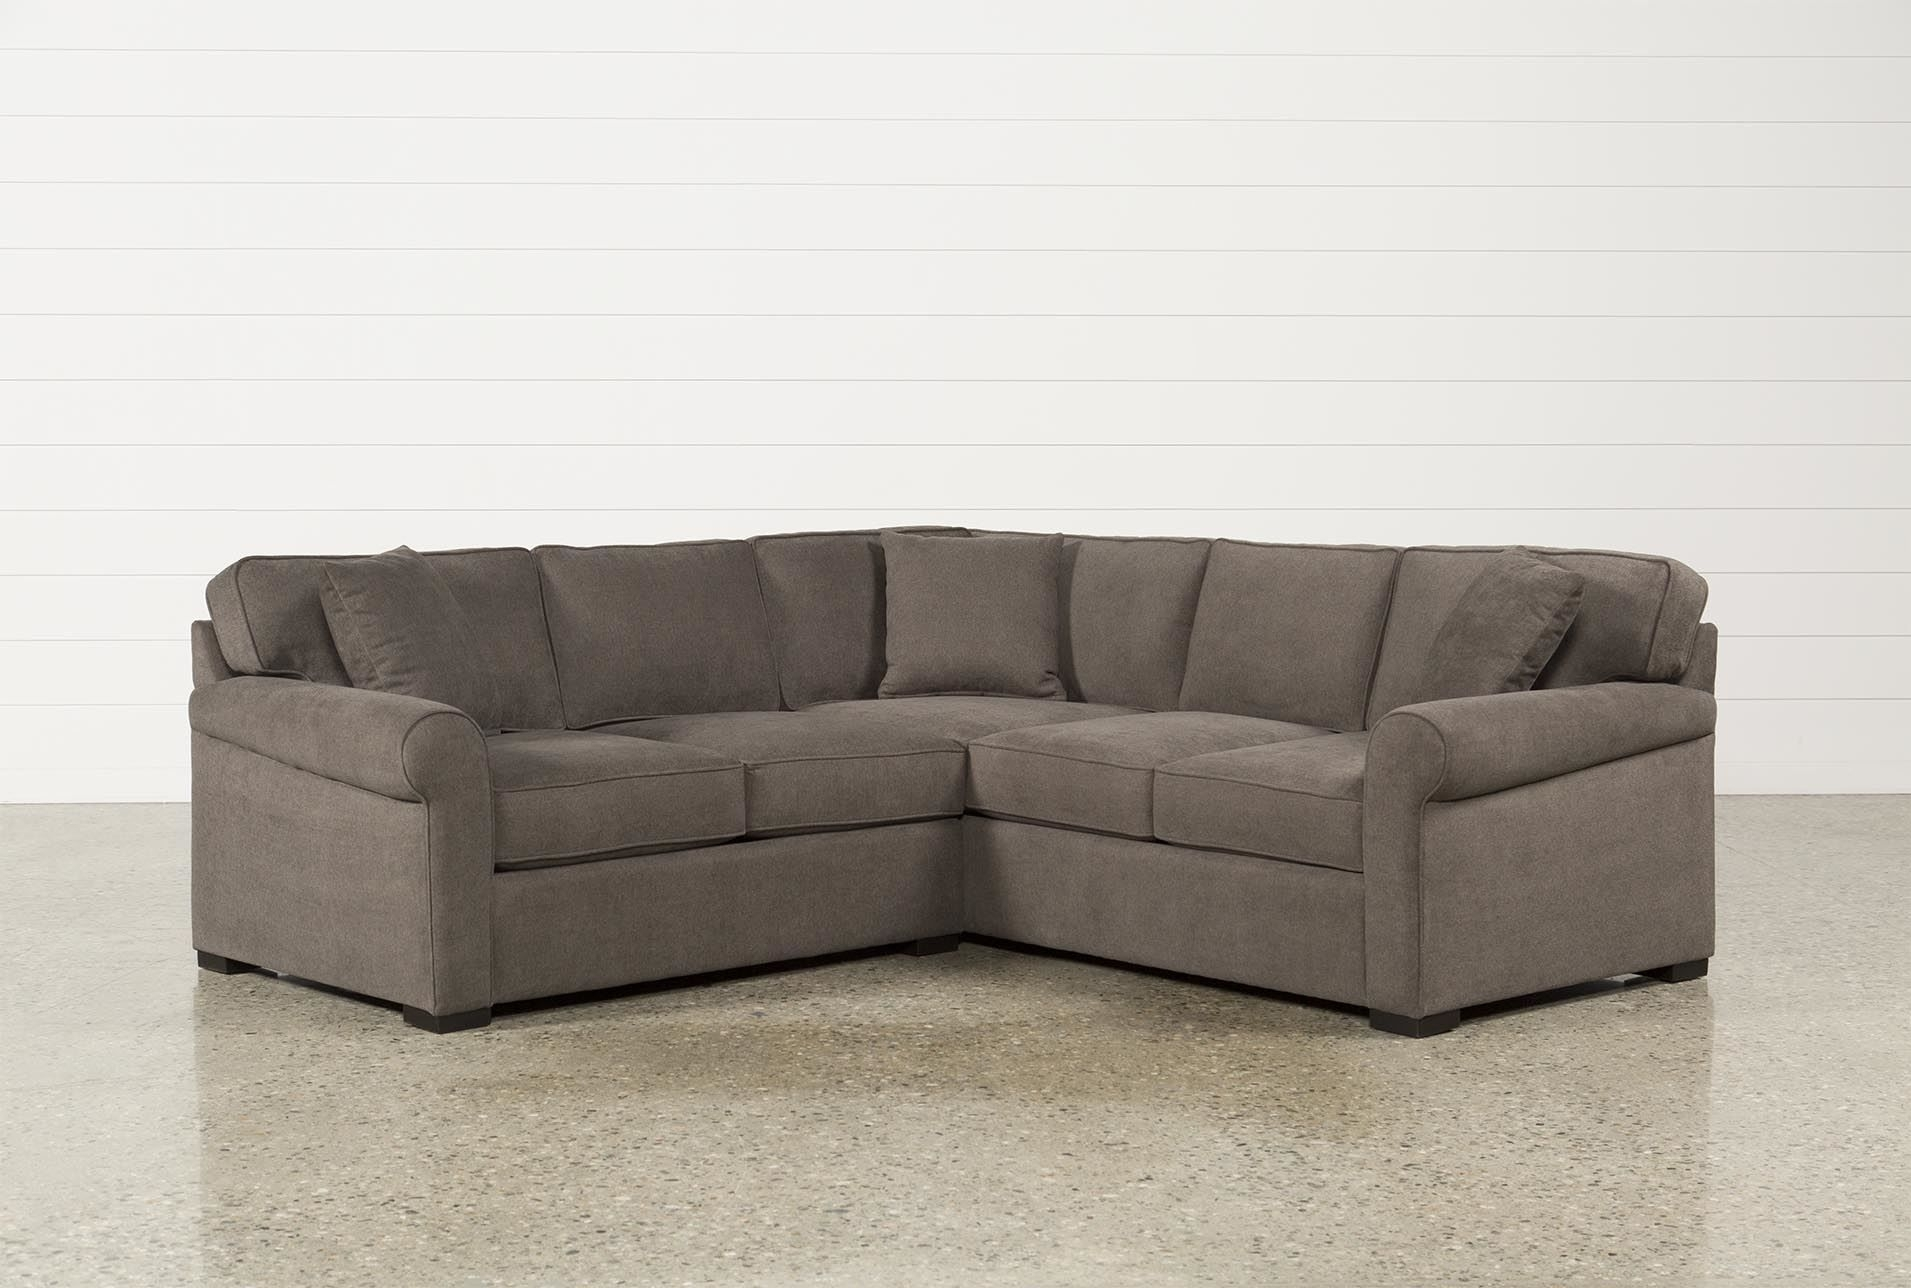 Elm Grande 2 Piece Sectional, Grey, Sofas | Pinterest | Living With Arrowmask 2 Piece Sectionals With Sleeper & Right Facing Chaise (View 19 of 25)